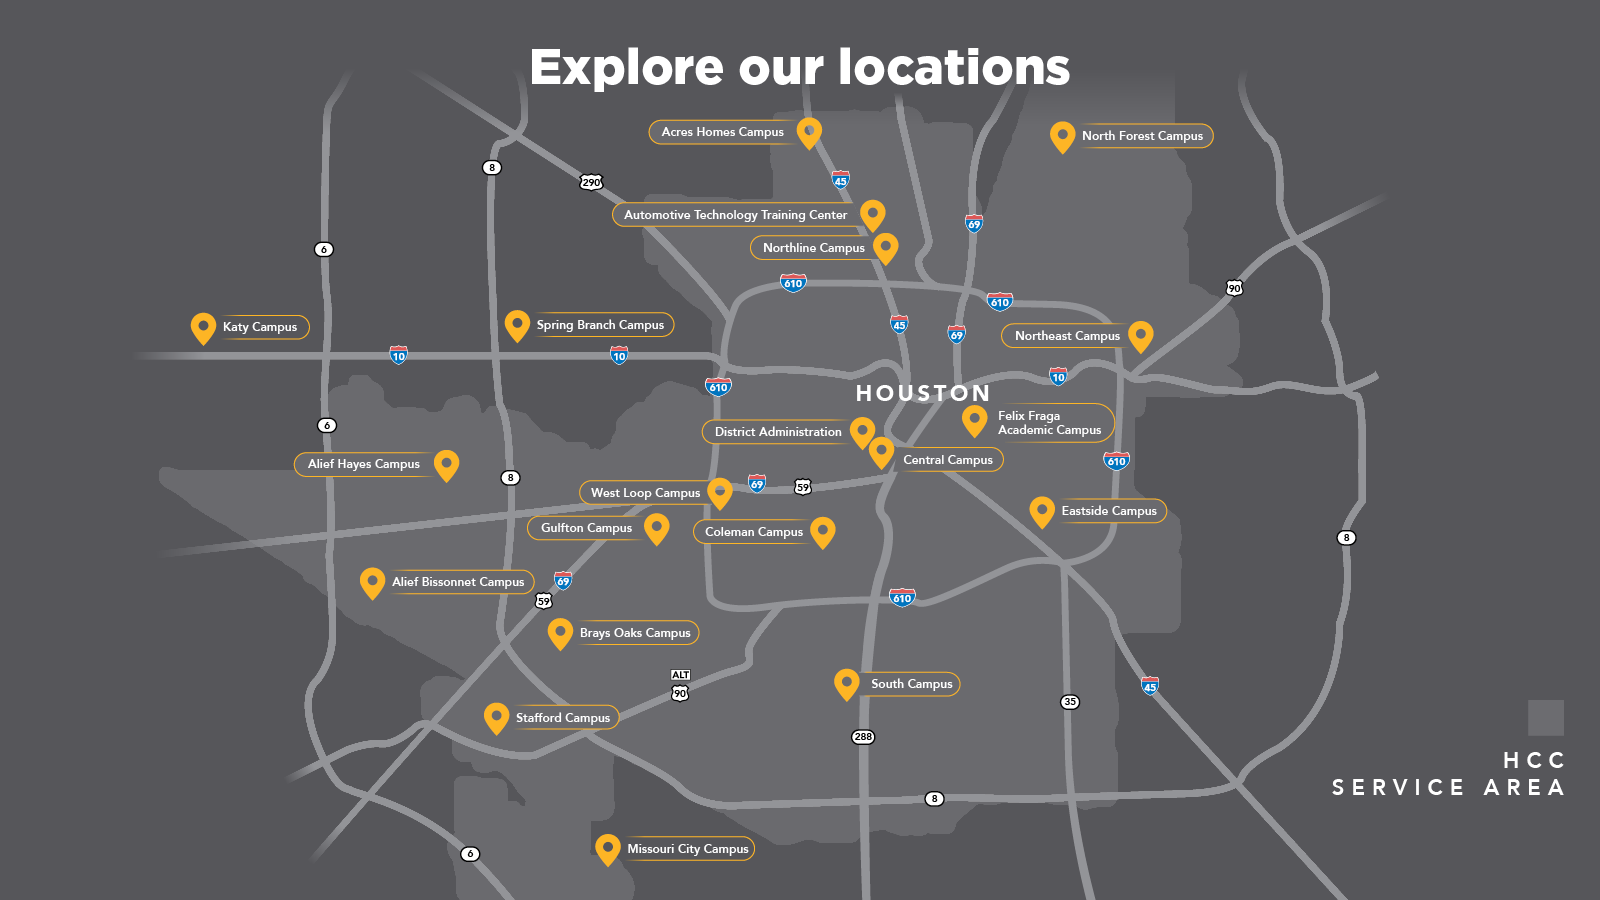 Explore our locations - map